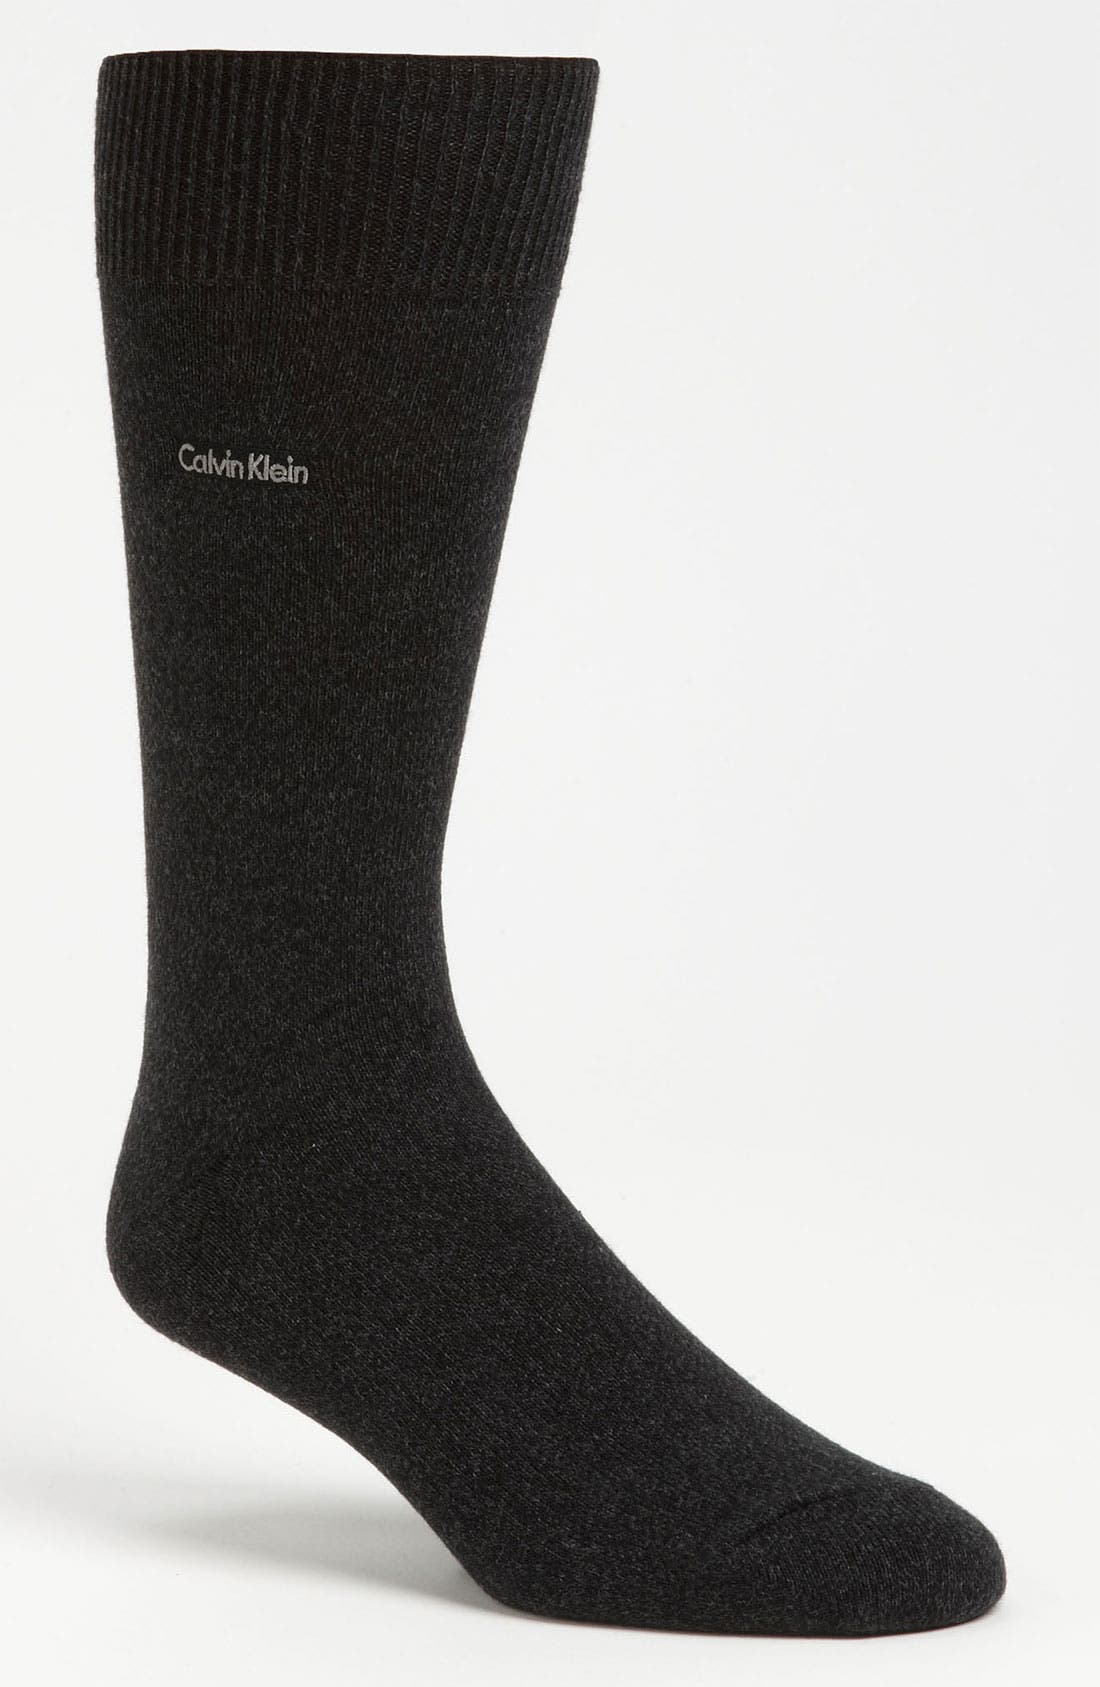 Alternate Image 1 Selected - Calvin Klein 'Signature' Socks